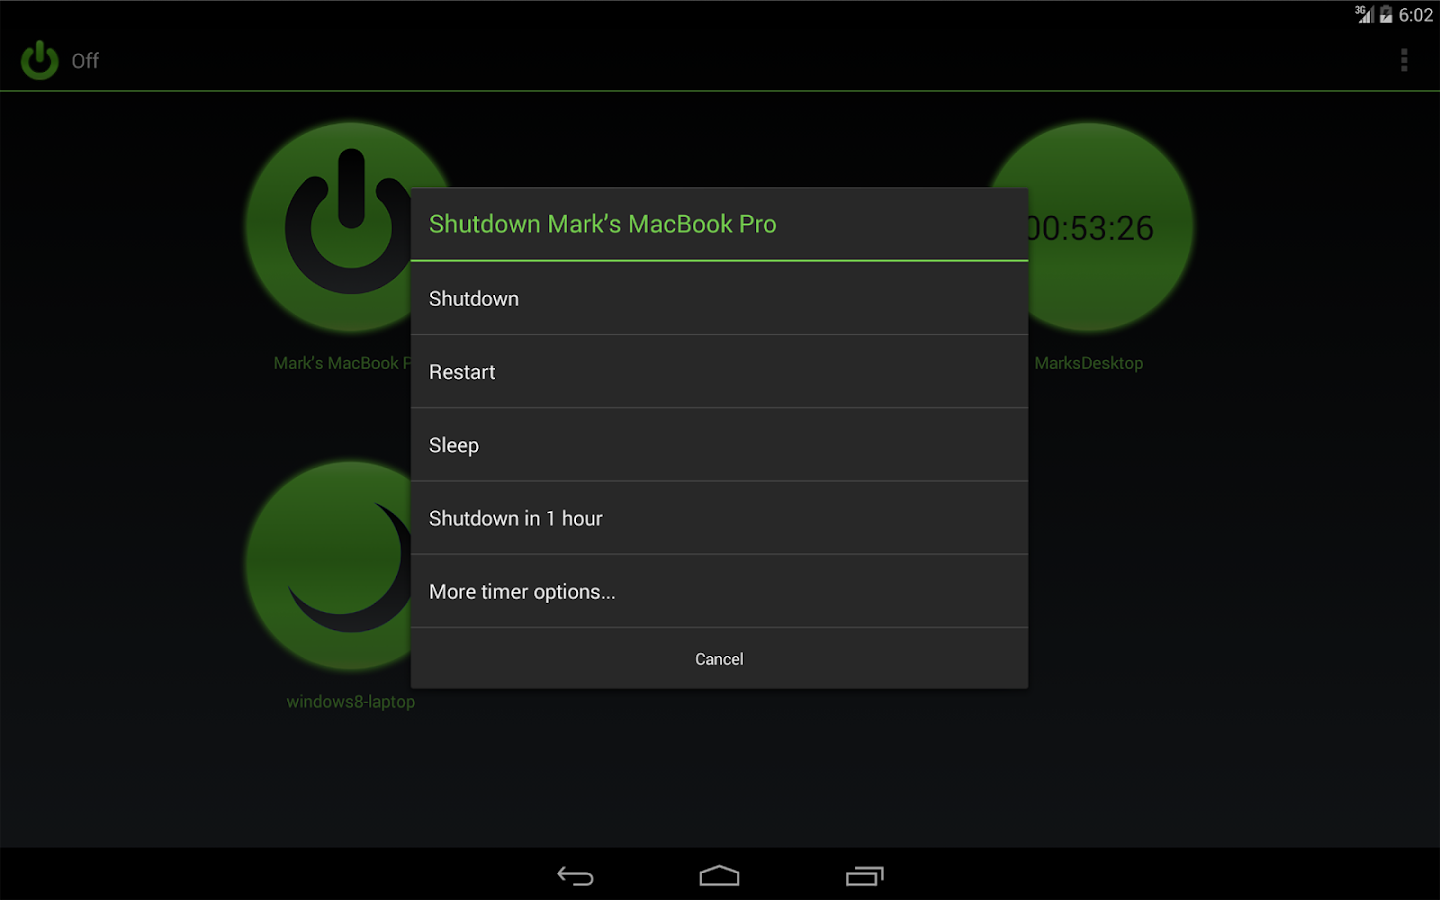 how to fix playback without restarting device